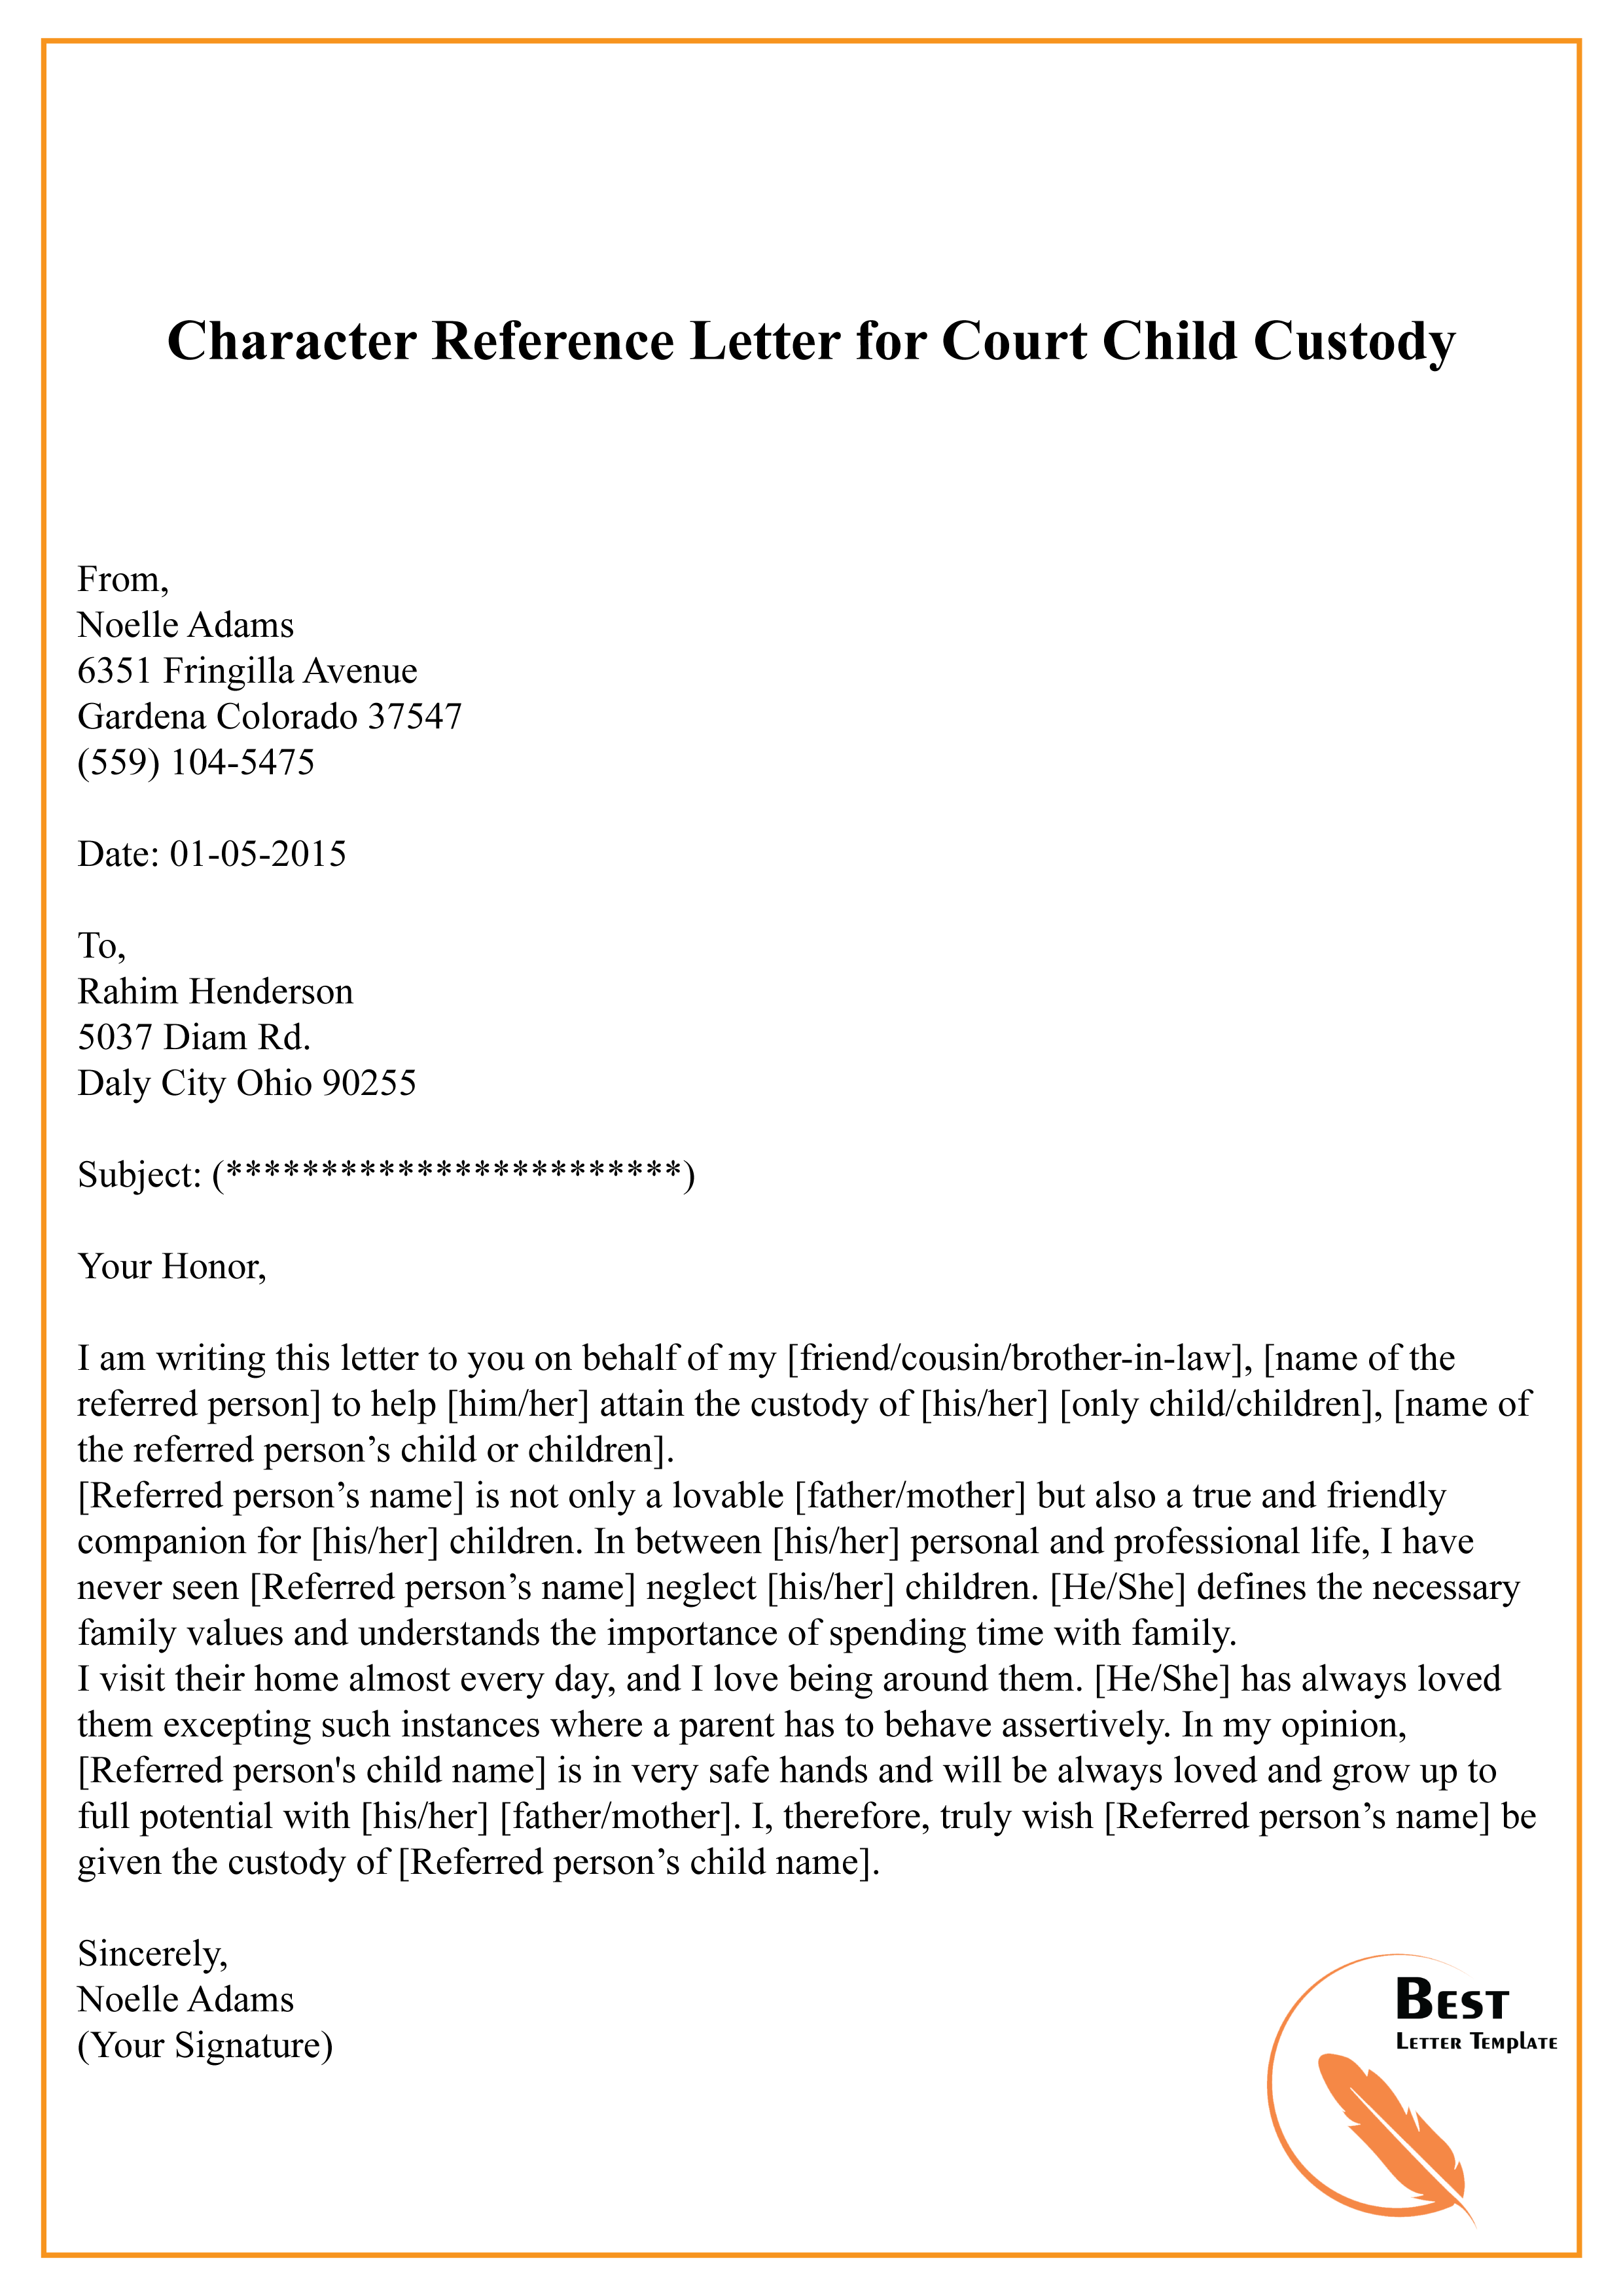 letter template for court  Character Reference Letter for Court Child Custody-15 | Best ...